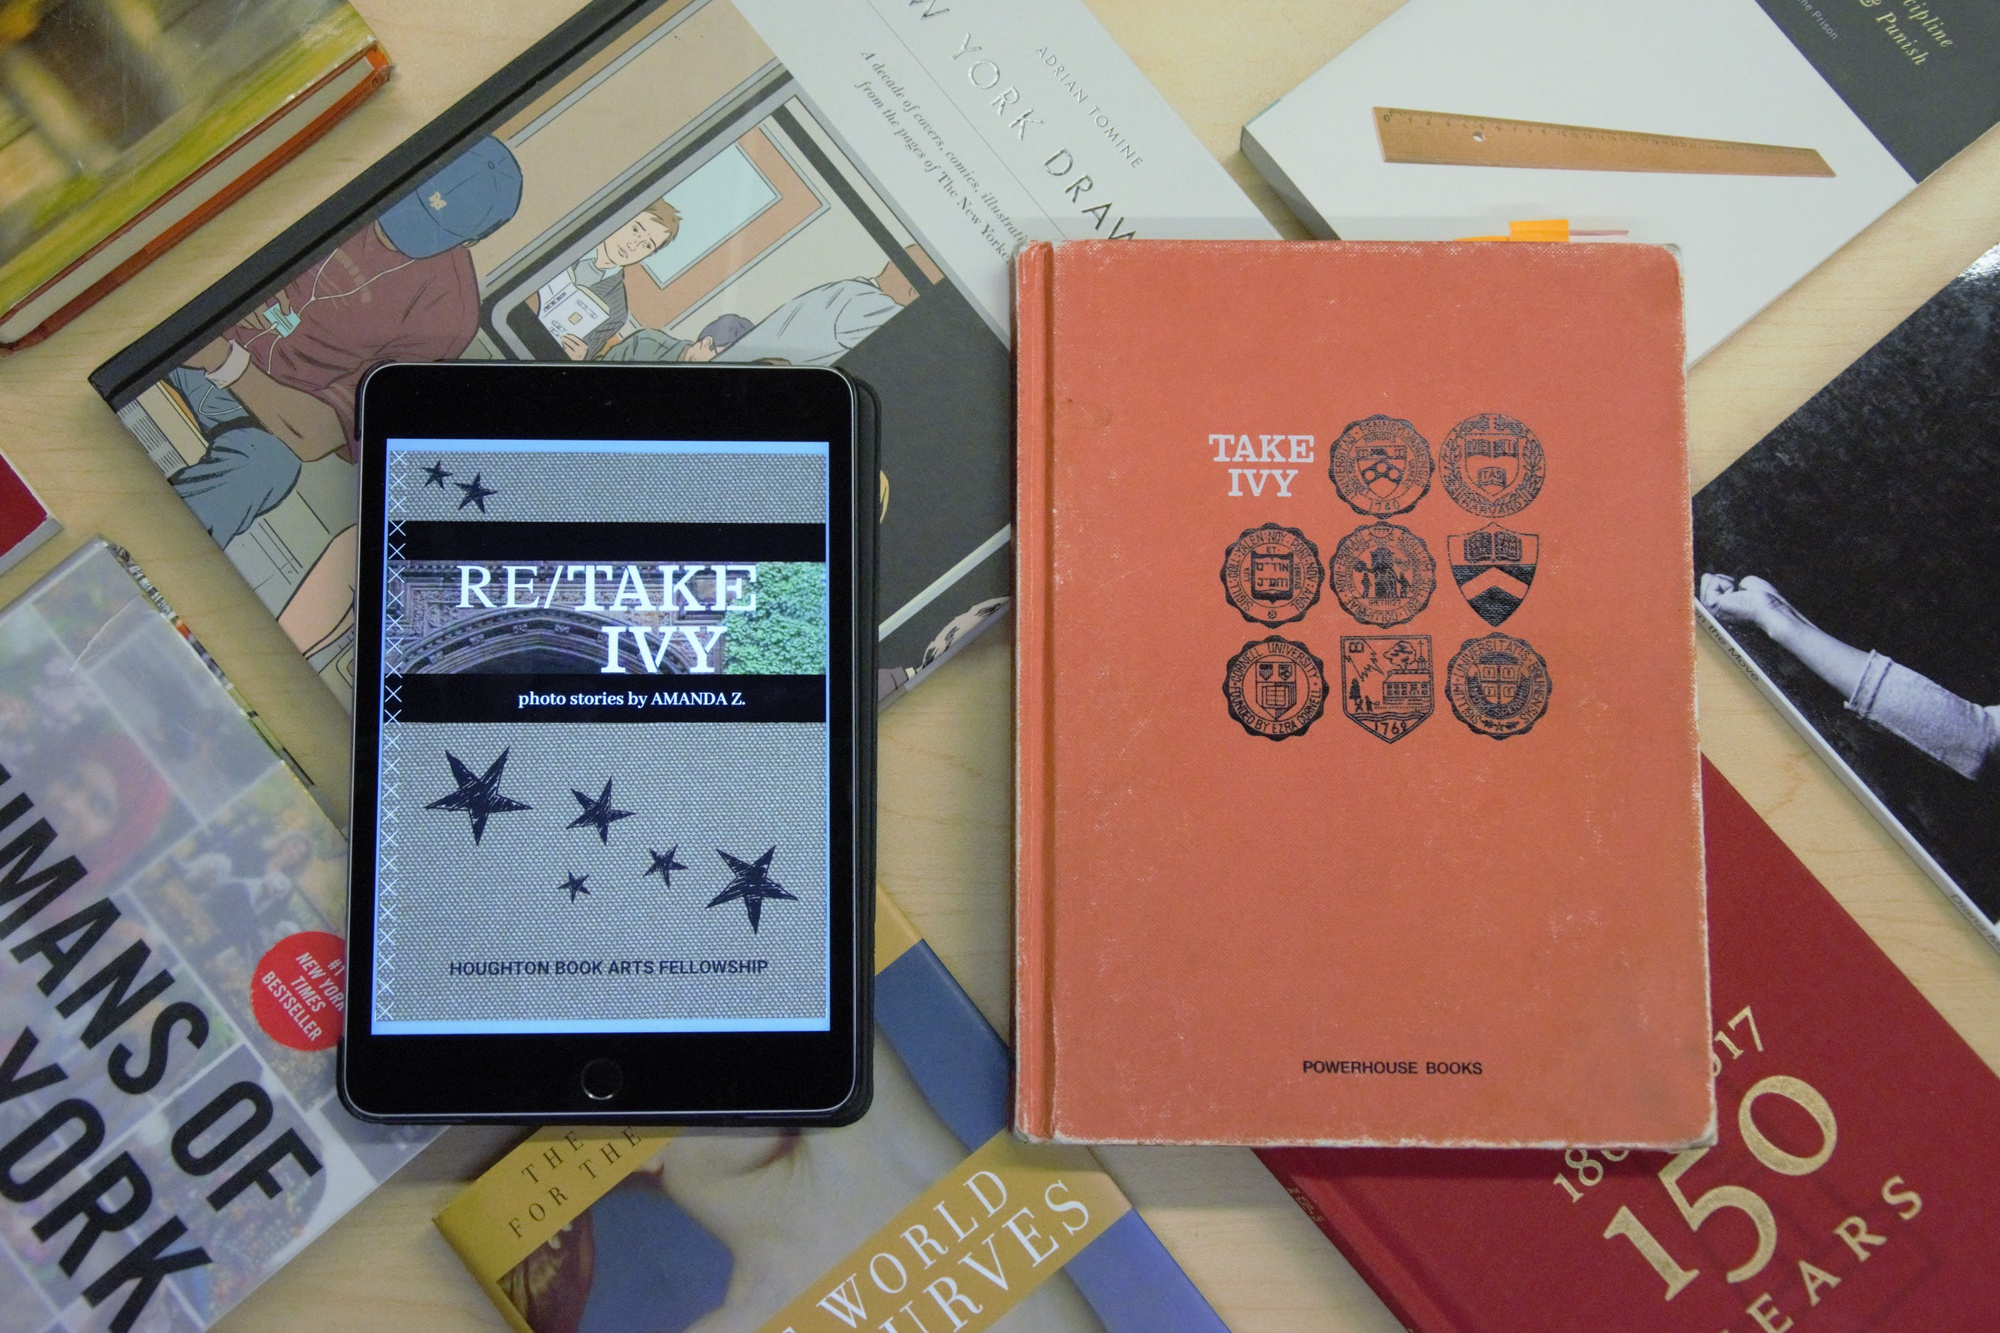 """The revamped """"Re/Take Ivy"""" and original """"Take Ivy"""" books are on FM's fashion reading list."""